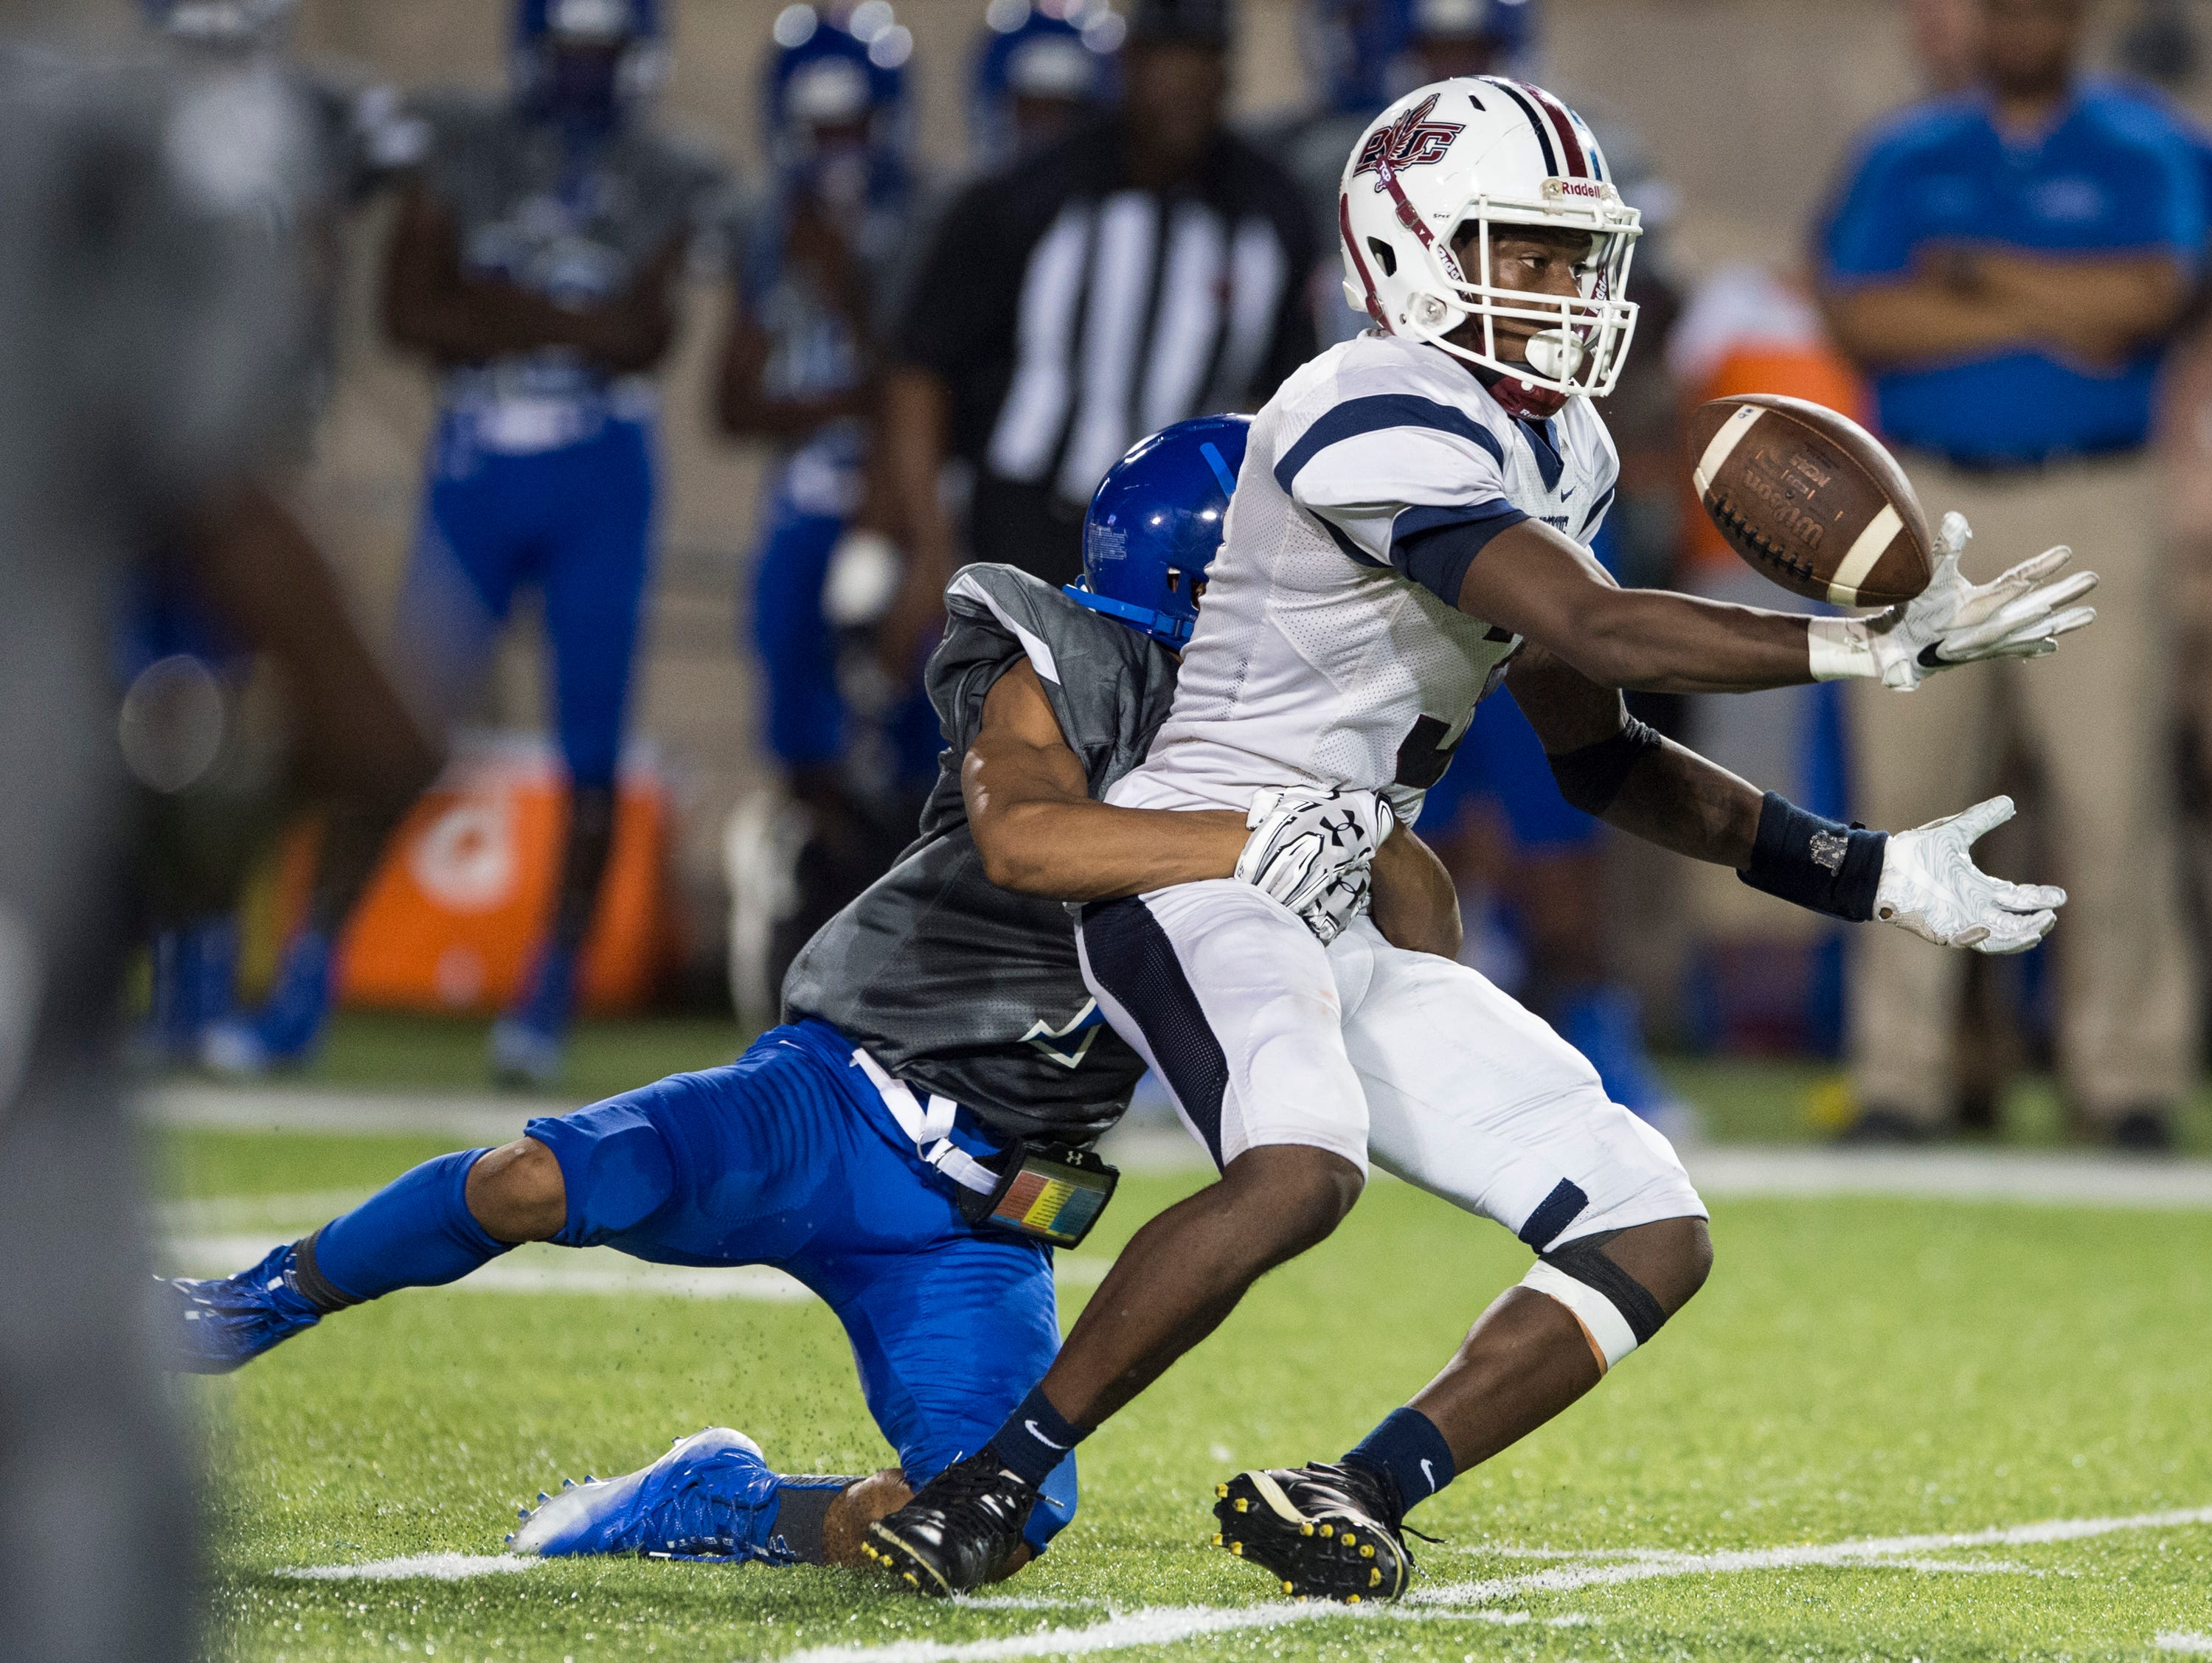 Park Crossing's Tremaine Osborne (3) can't quite hold on to the ball defended by Lanier's Keldrick Jacobs (1) at Cramton Bowl in Montgomery, Ala., on Friday, Sept. 21, 2018. Lanier leads Park Crossing 14-7 at halftime.